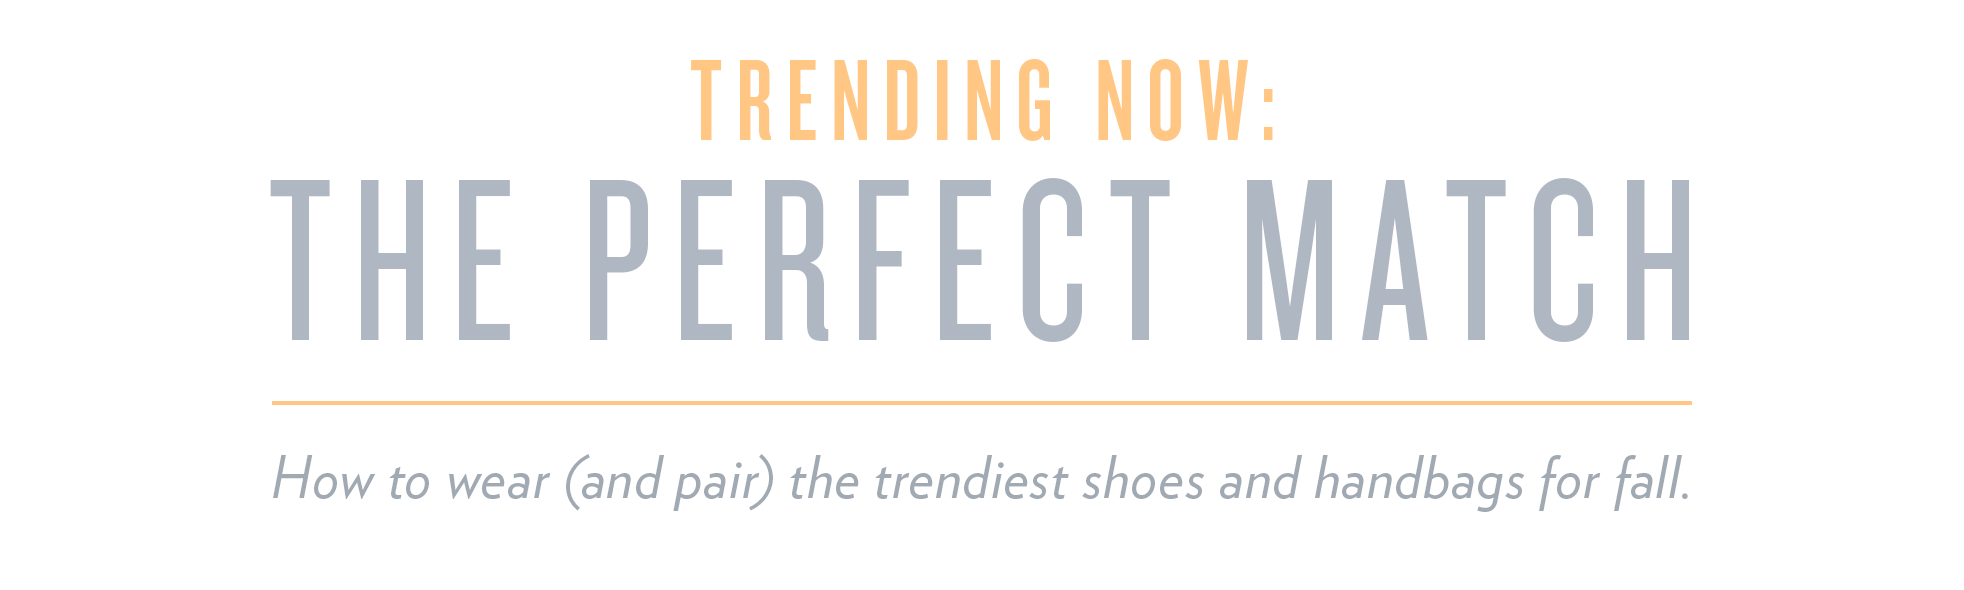 Trending Now: The Perfect Match